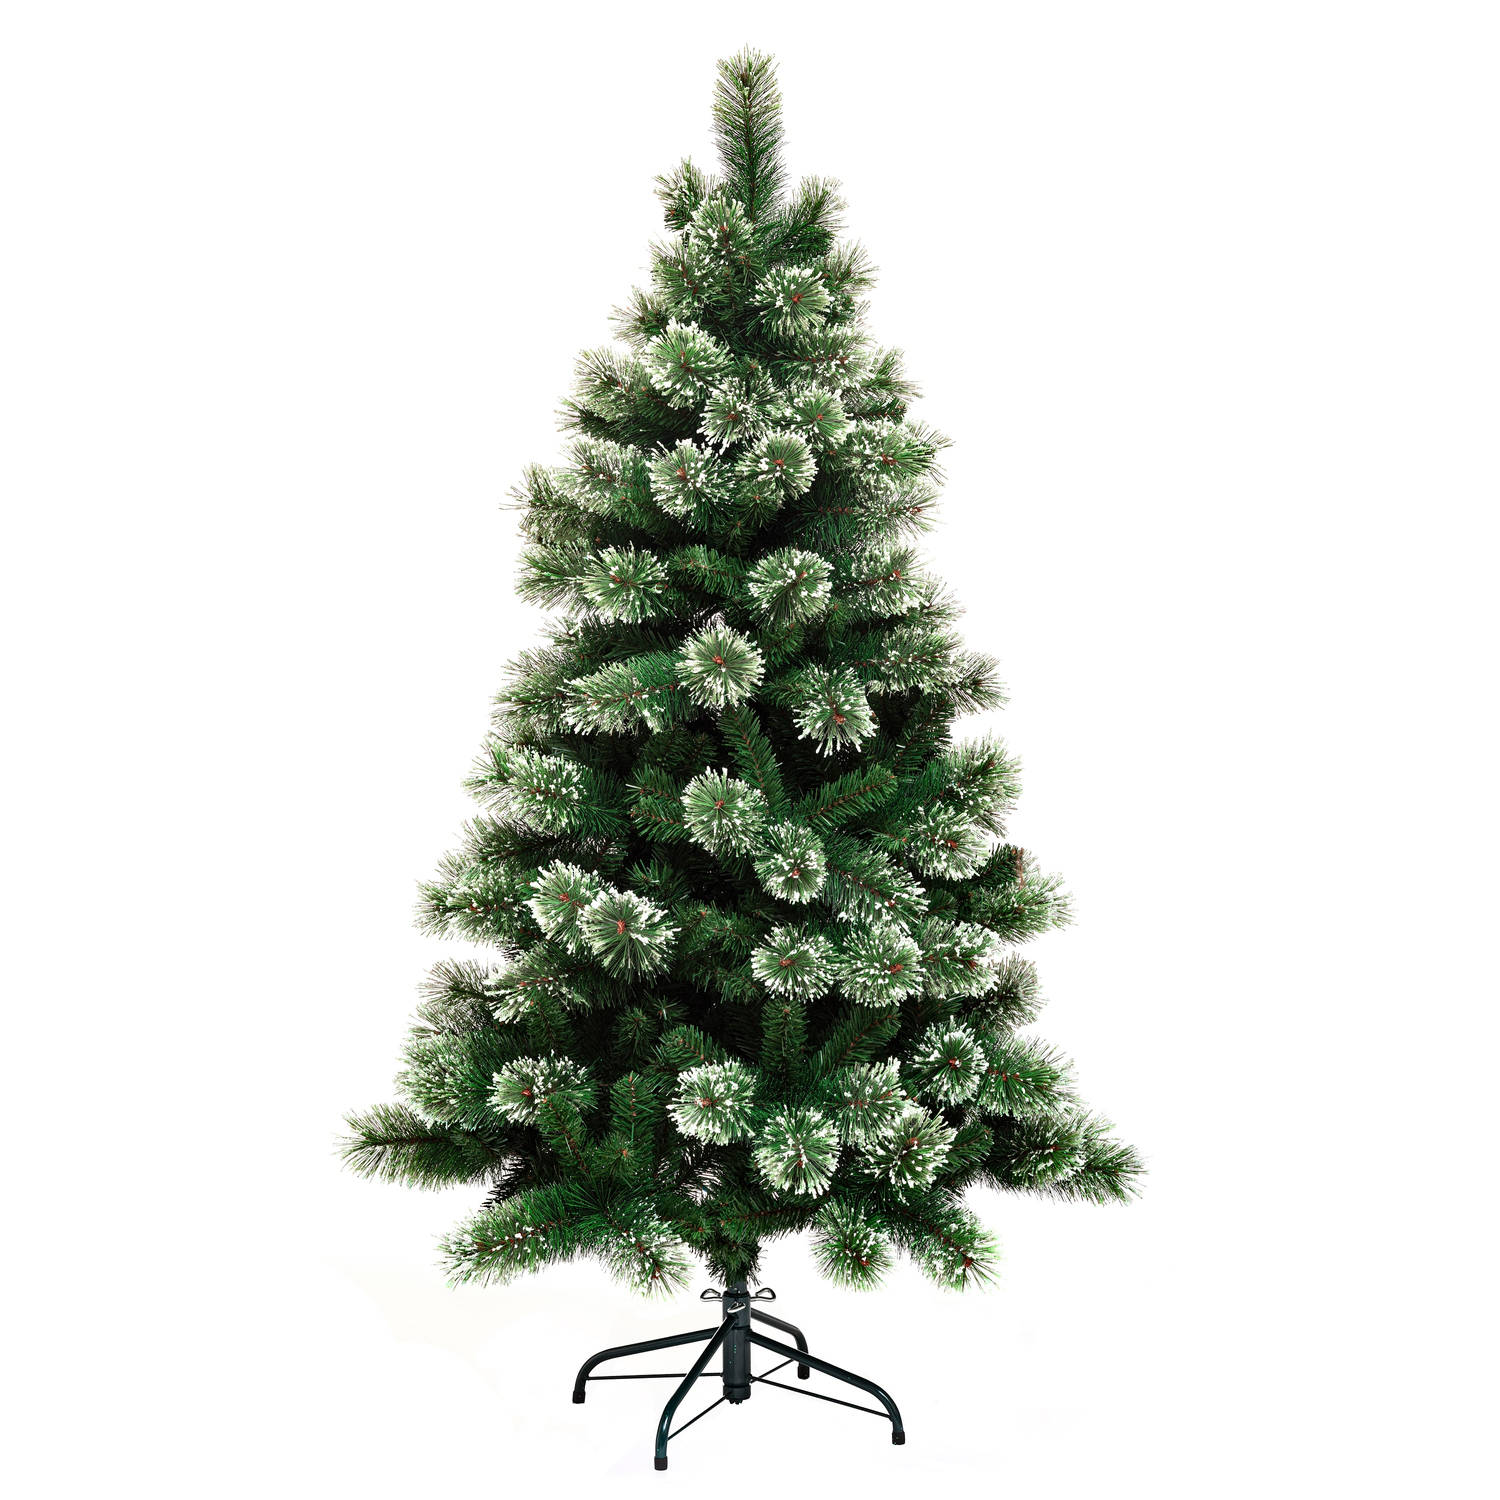 4Goodz kunstkerstboom Gracious Frosted Pine 150 cm Groen-Wit